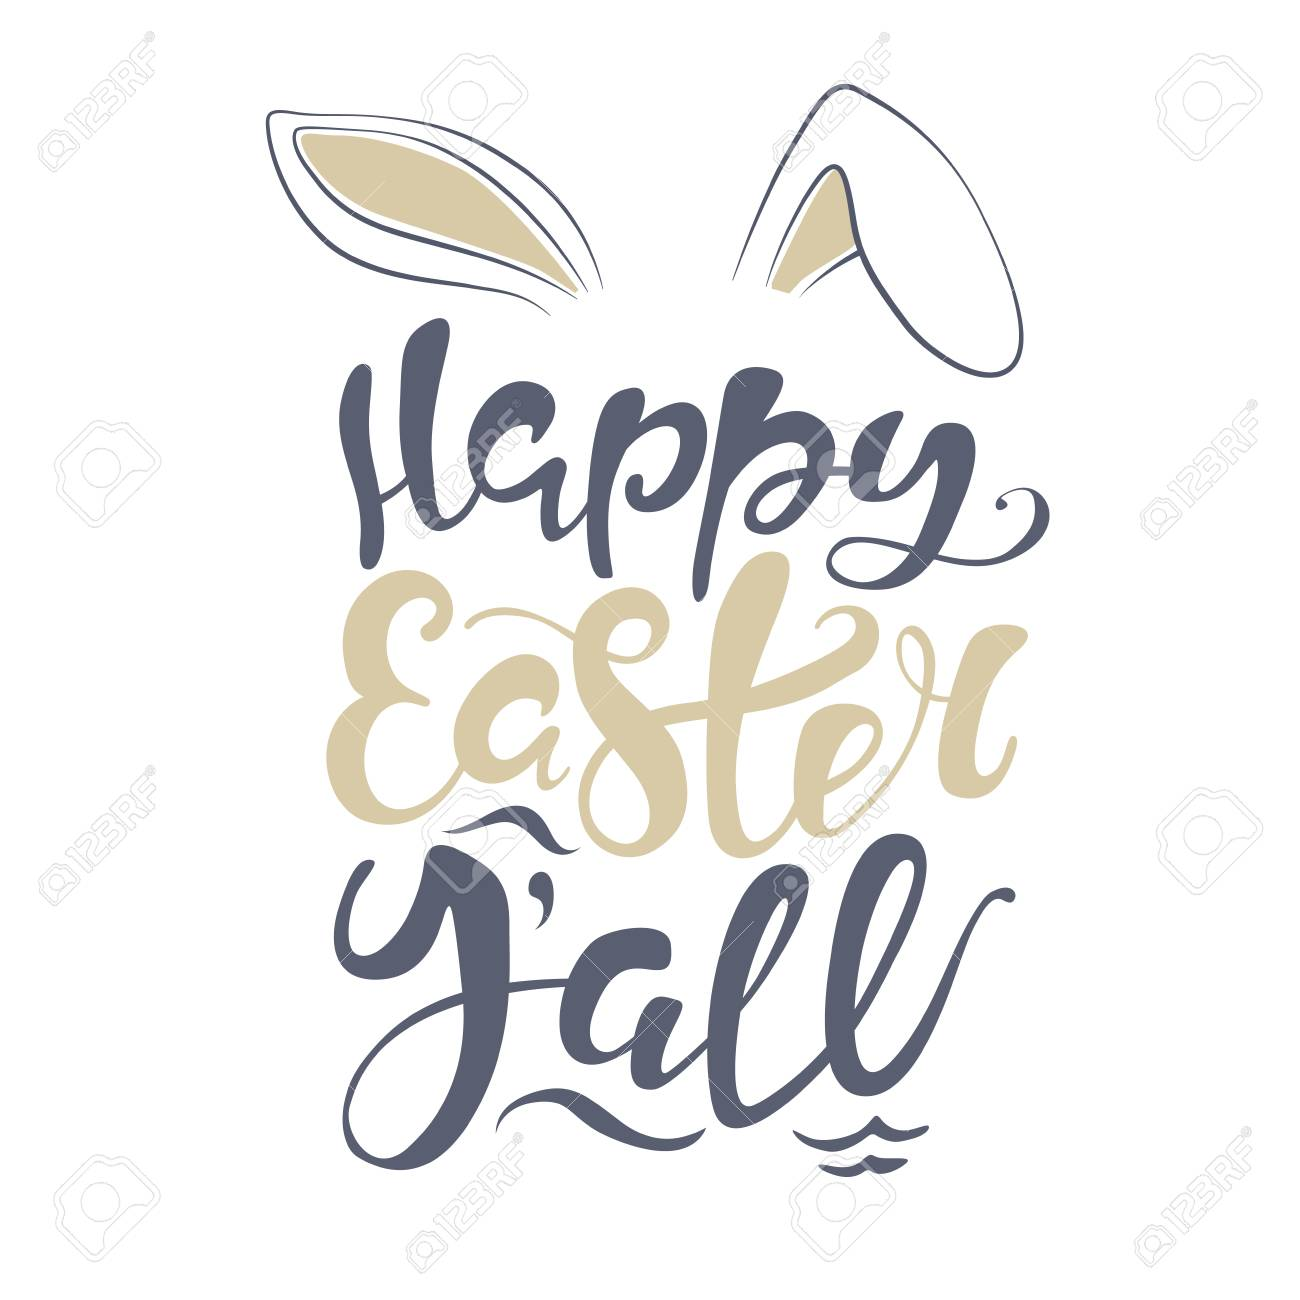 It's just an image of Happy Easter Sign Printable pertaining to fancy writing